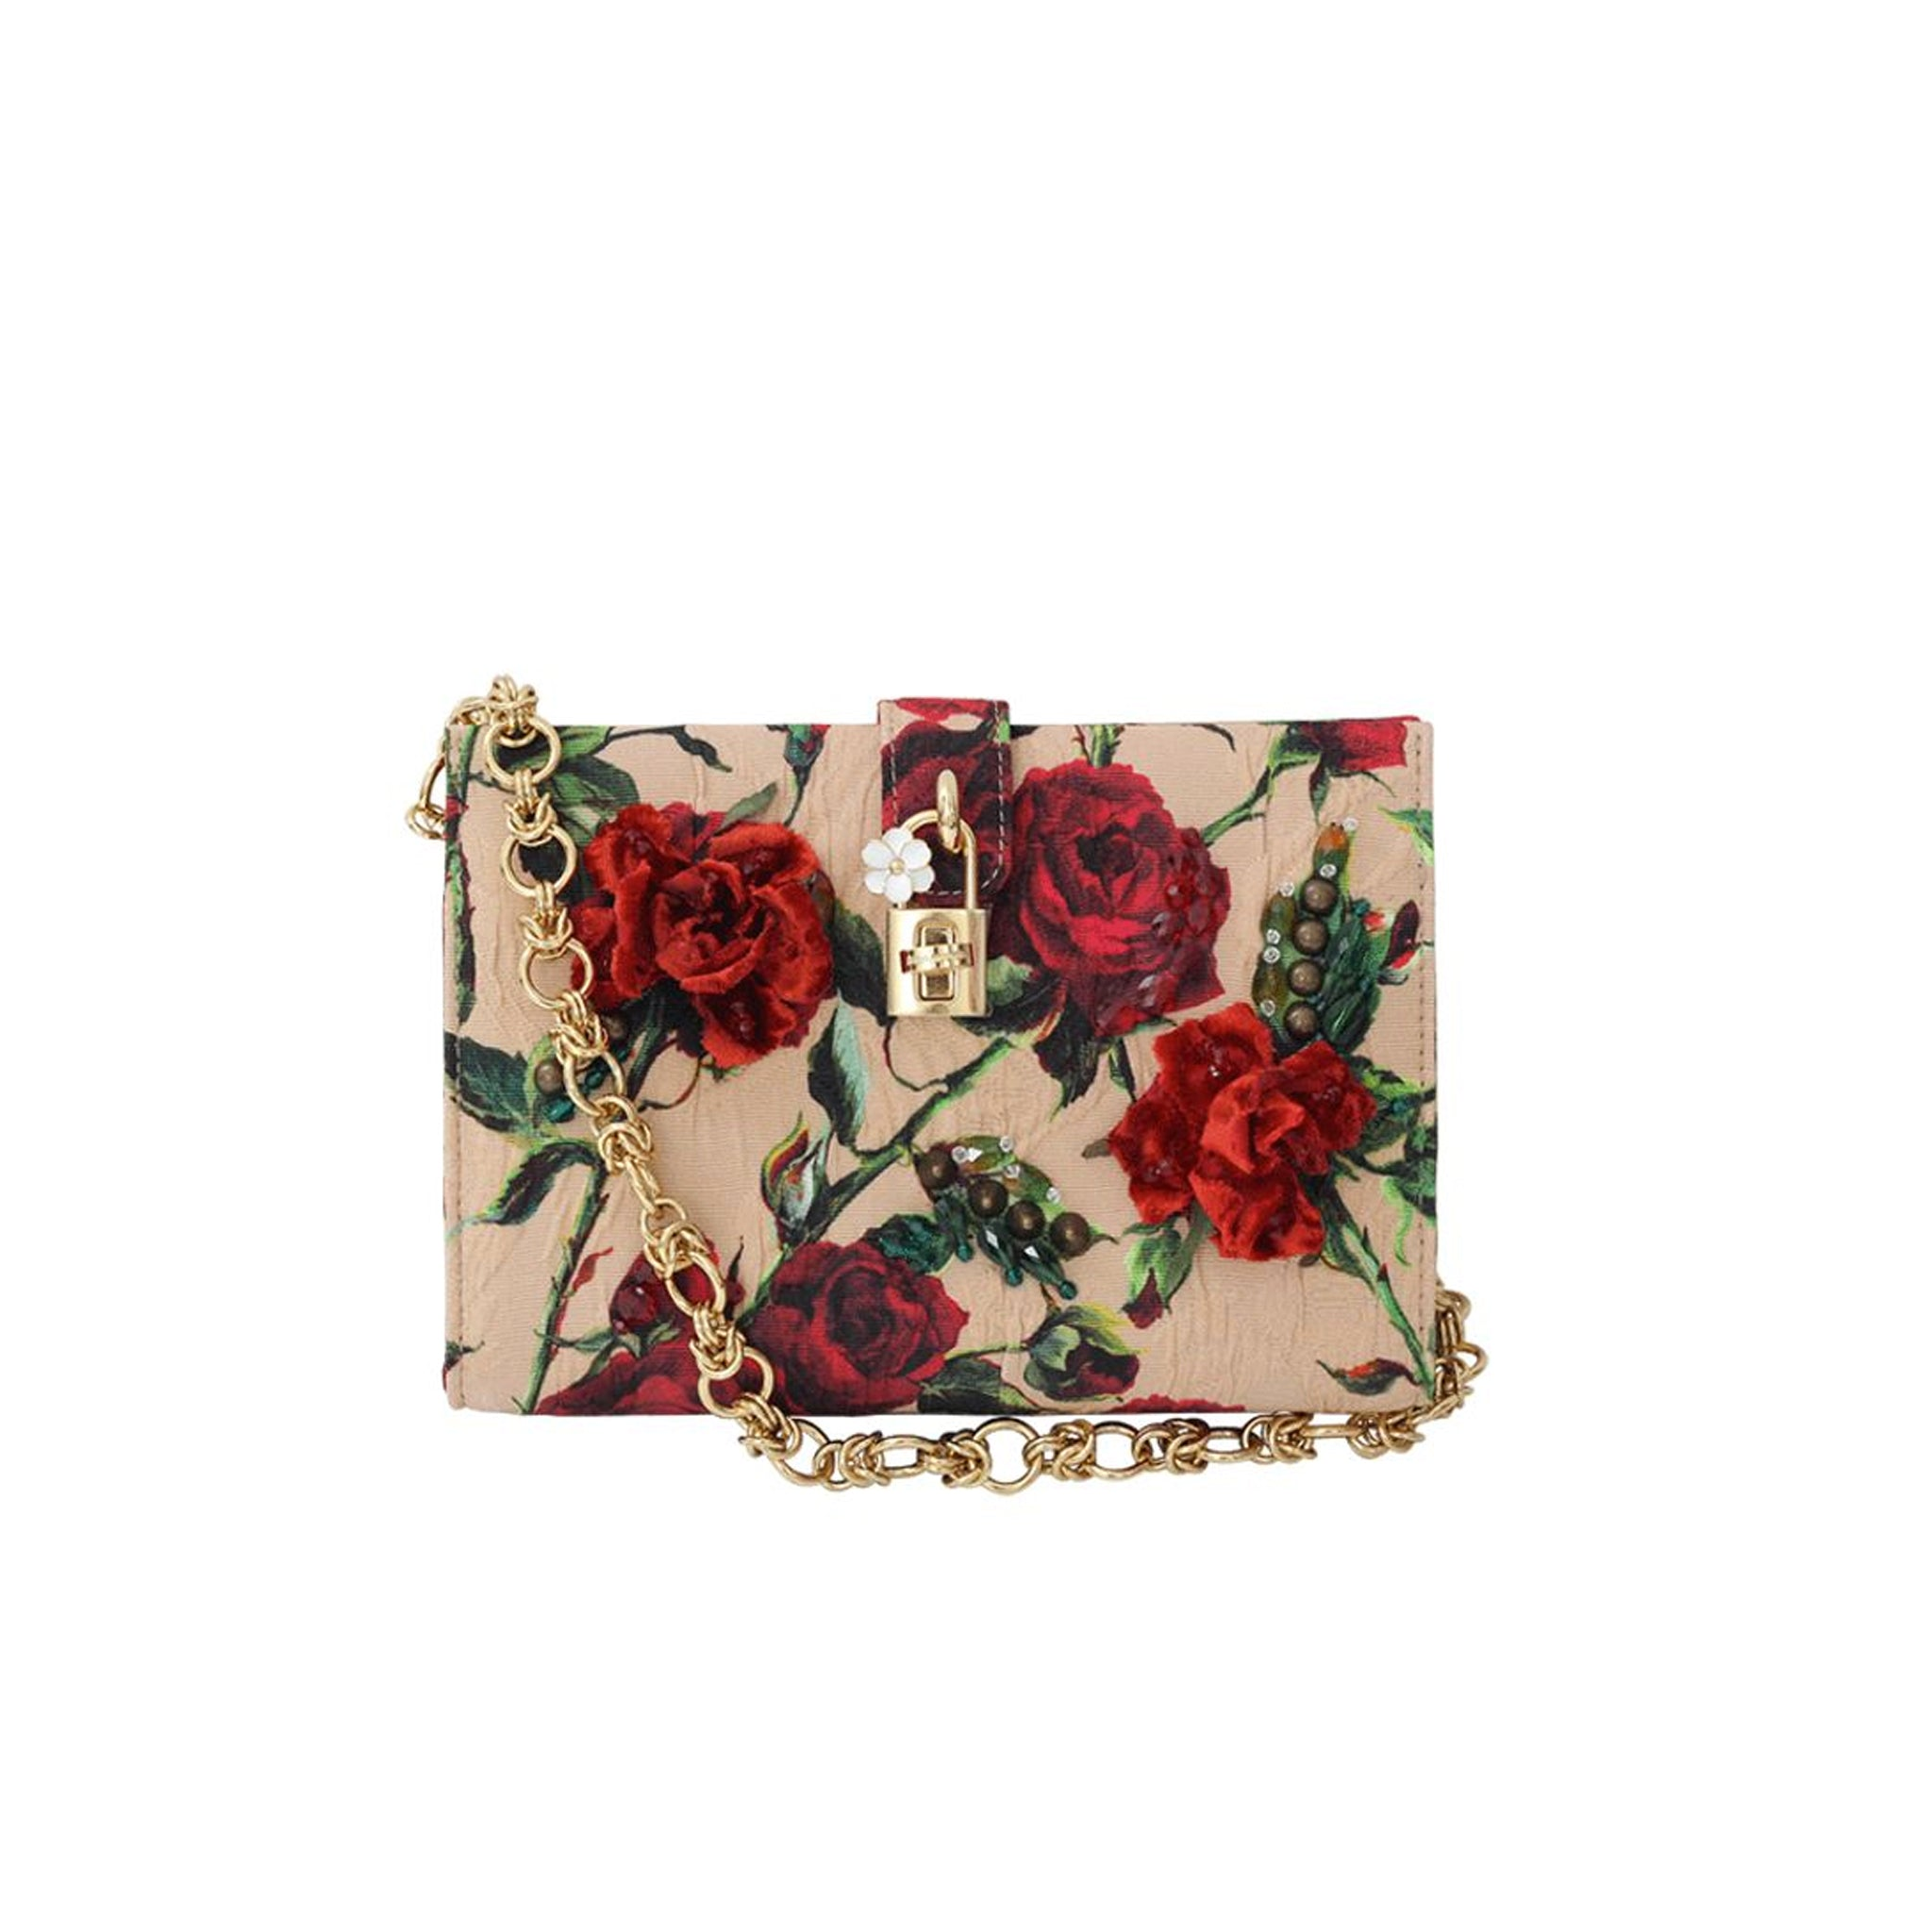 Dolce & Gabbana Rose Print Canvas Bag